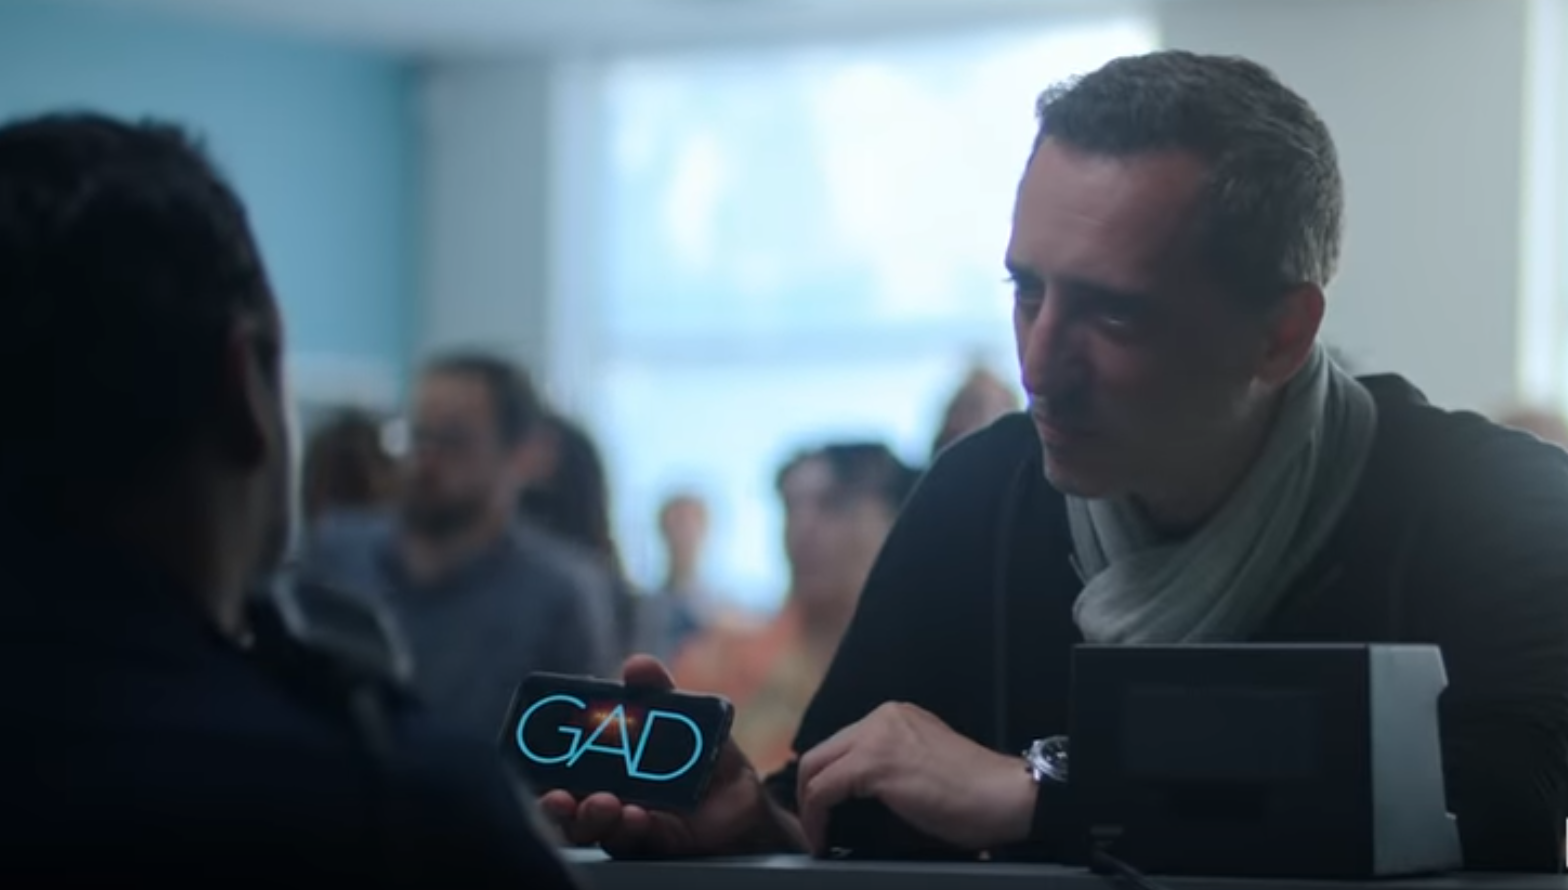 Gad Elmaleh holding a mobile phone that says GAD